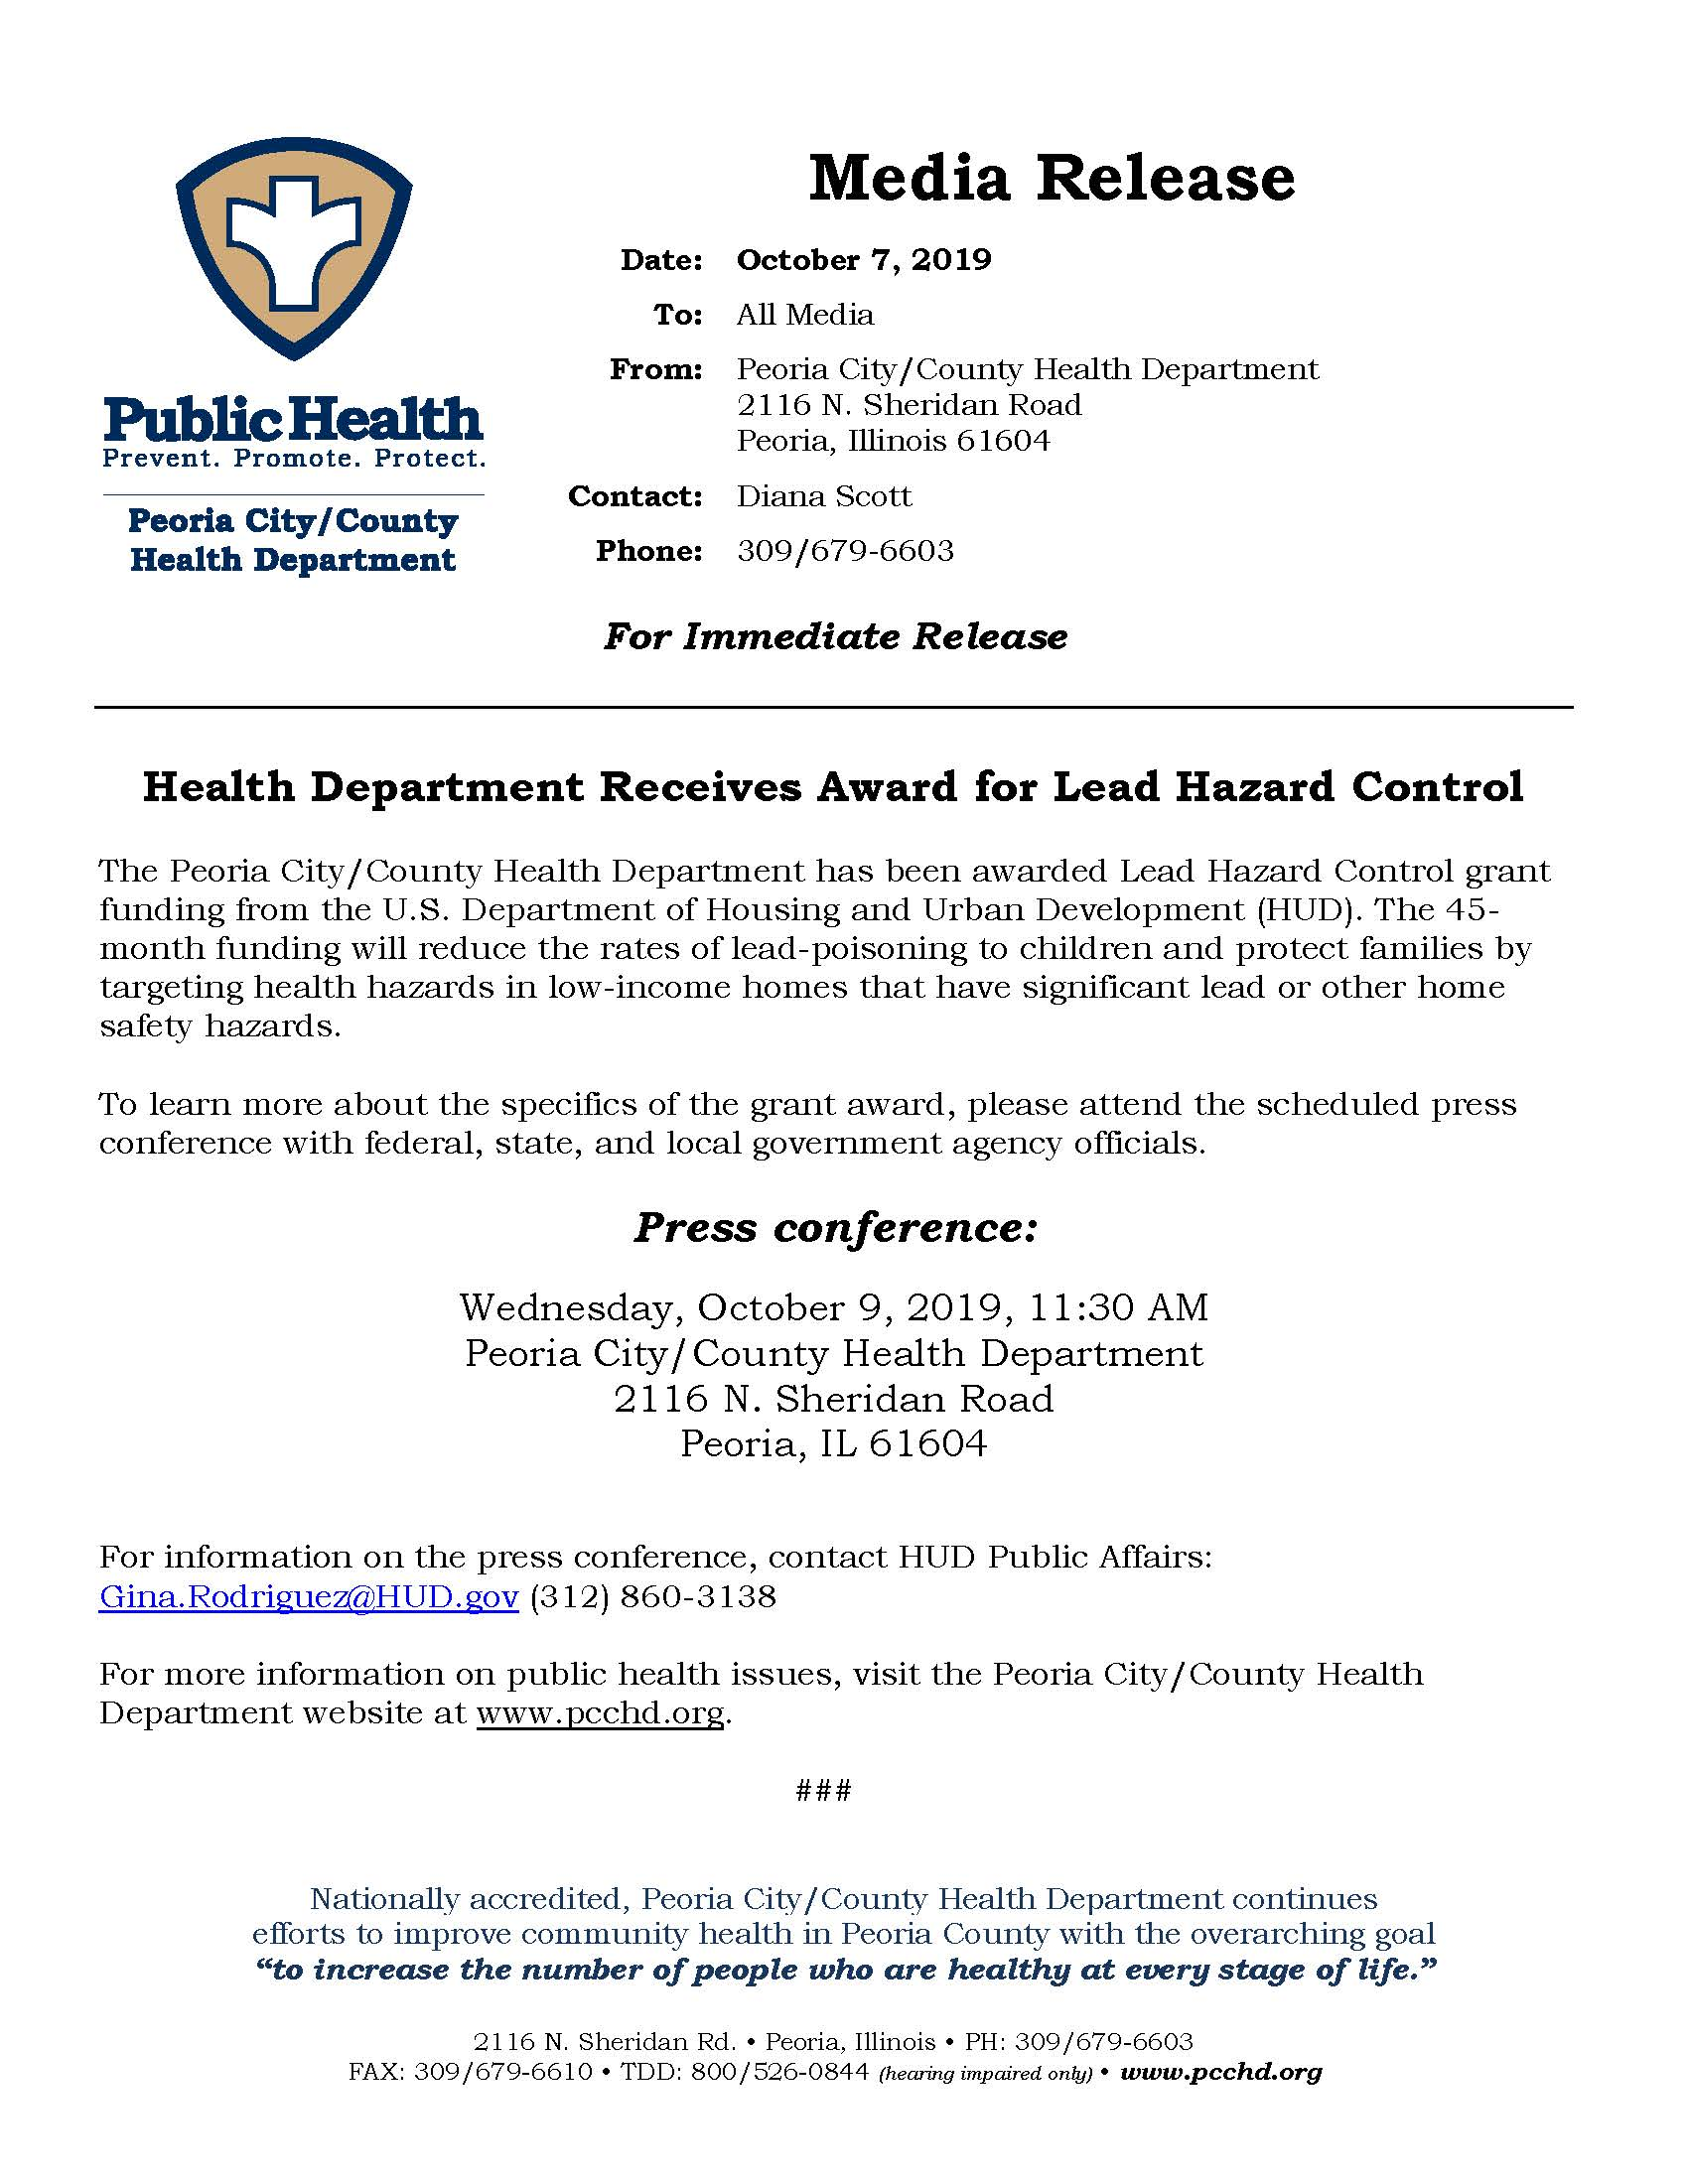 10-7-19 Press Conference for Grant Award for Lead Hazard Control_